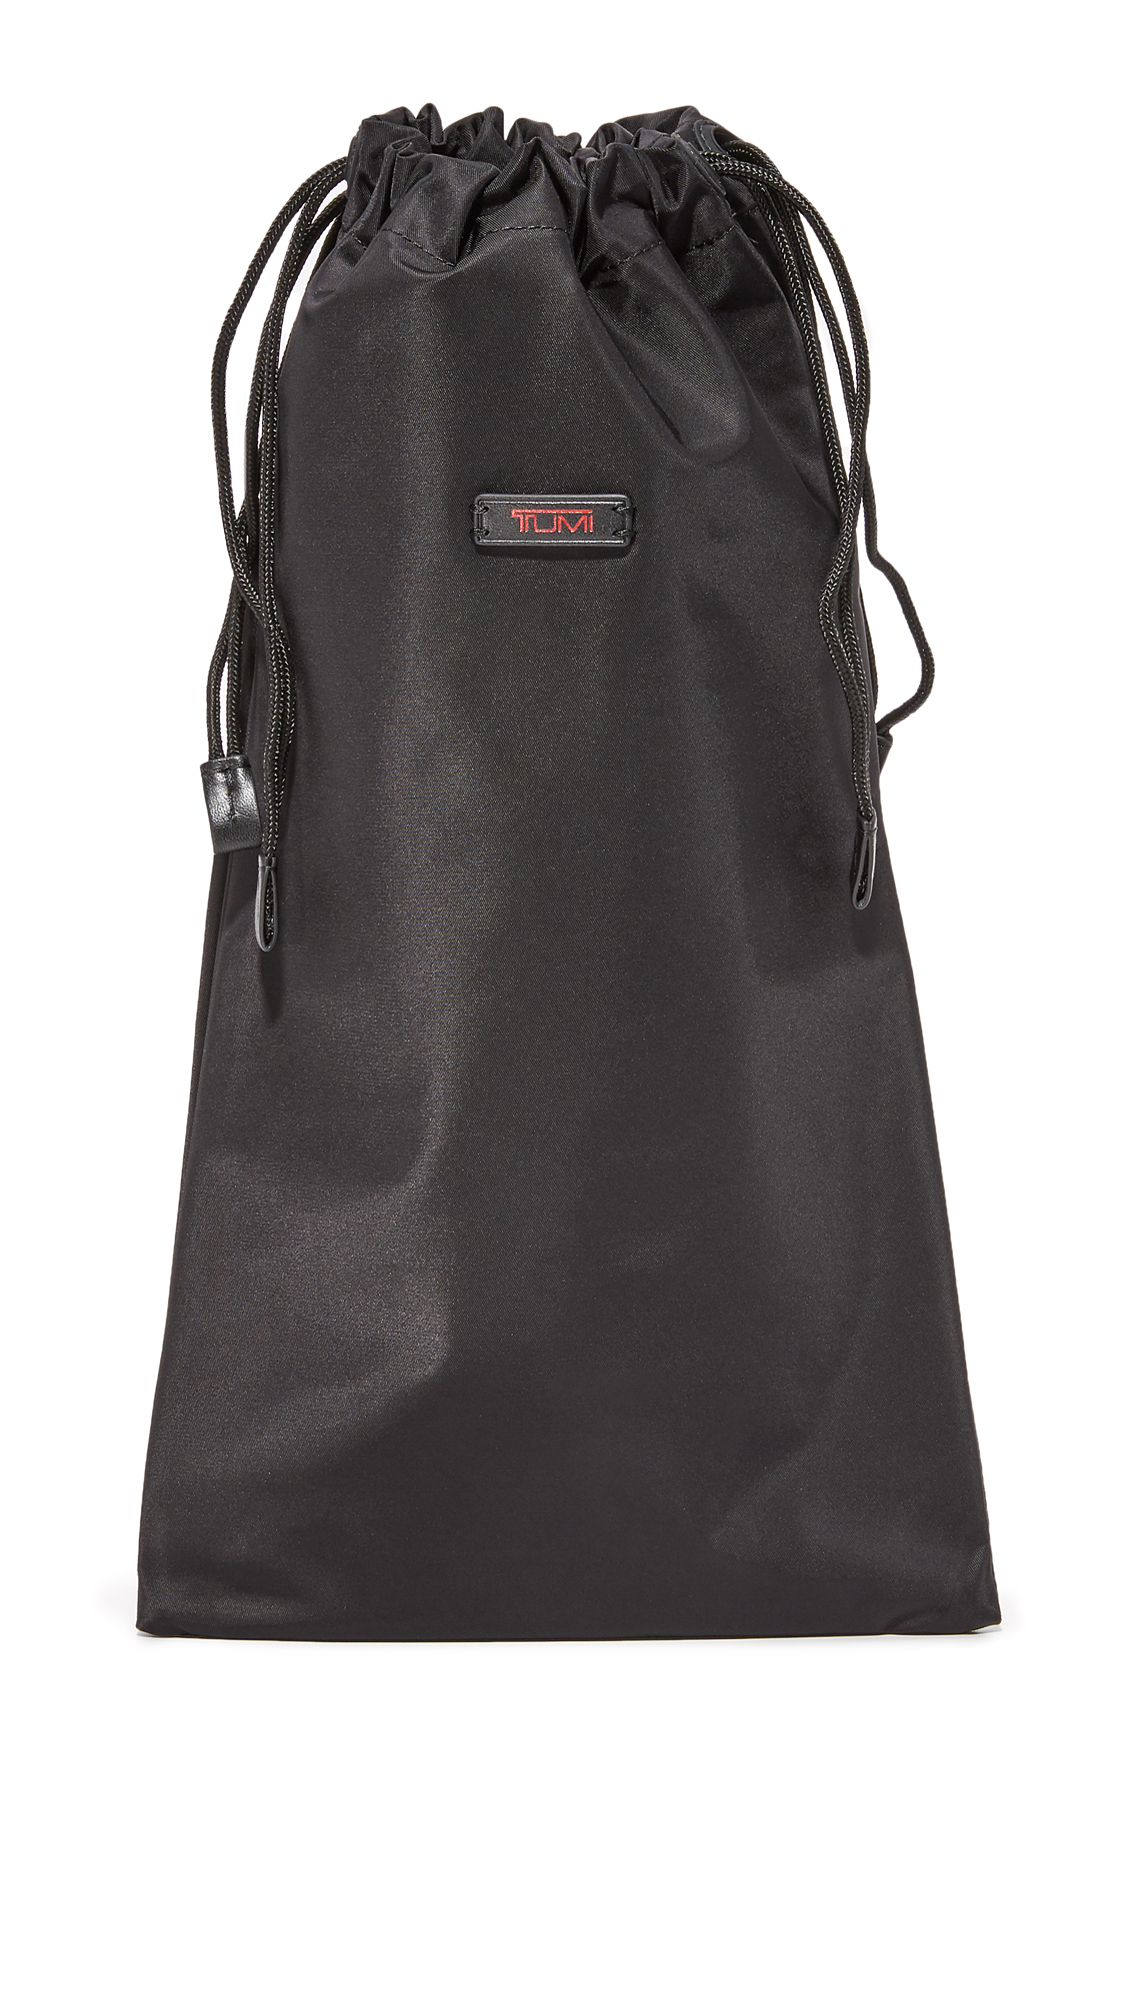 Tumi Shoes Bag - Black